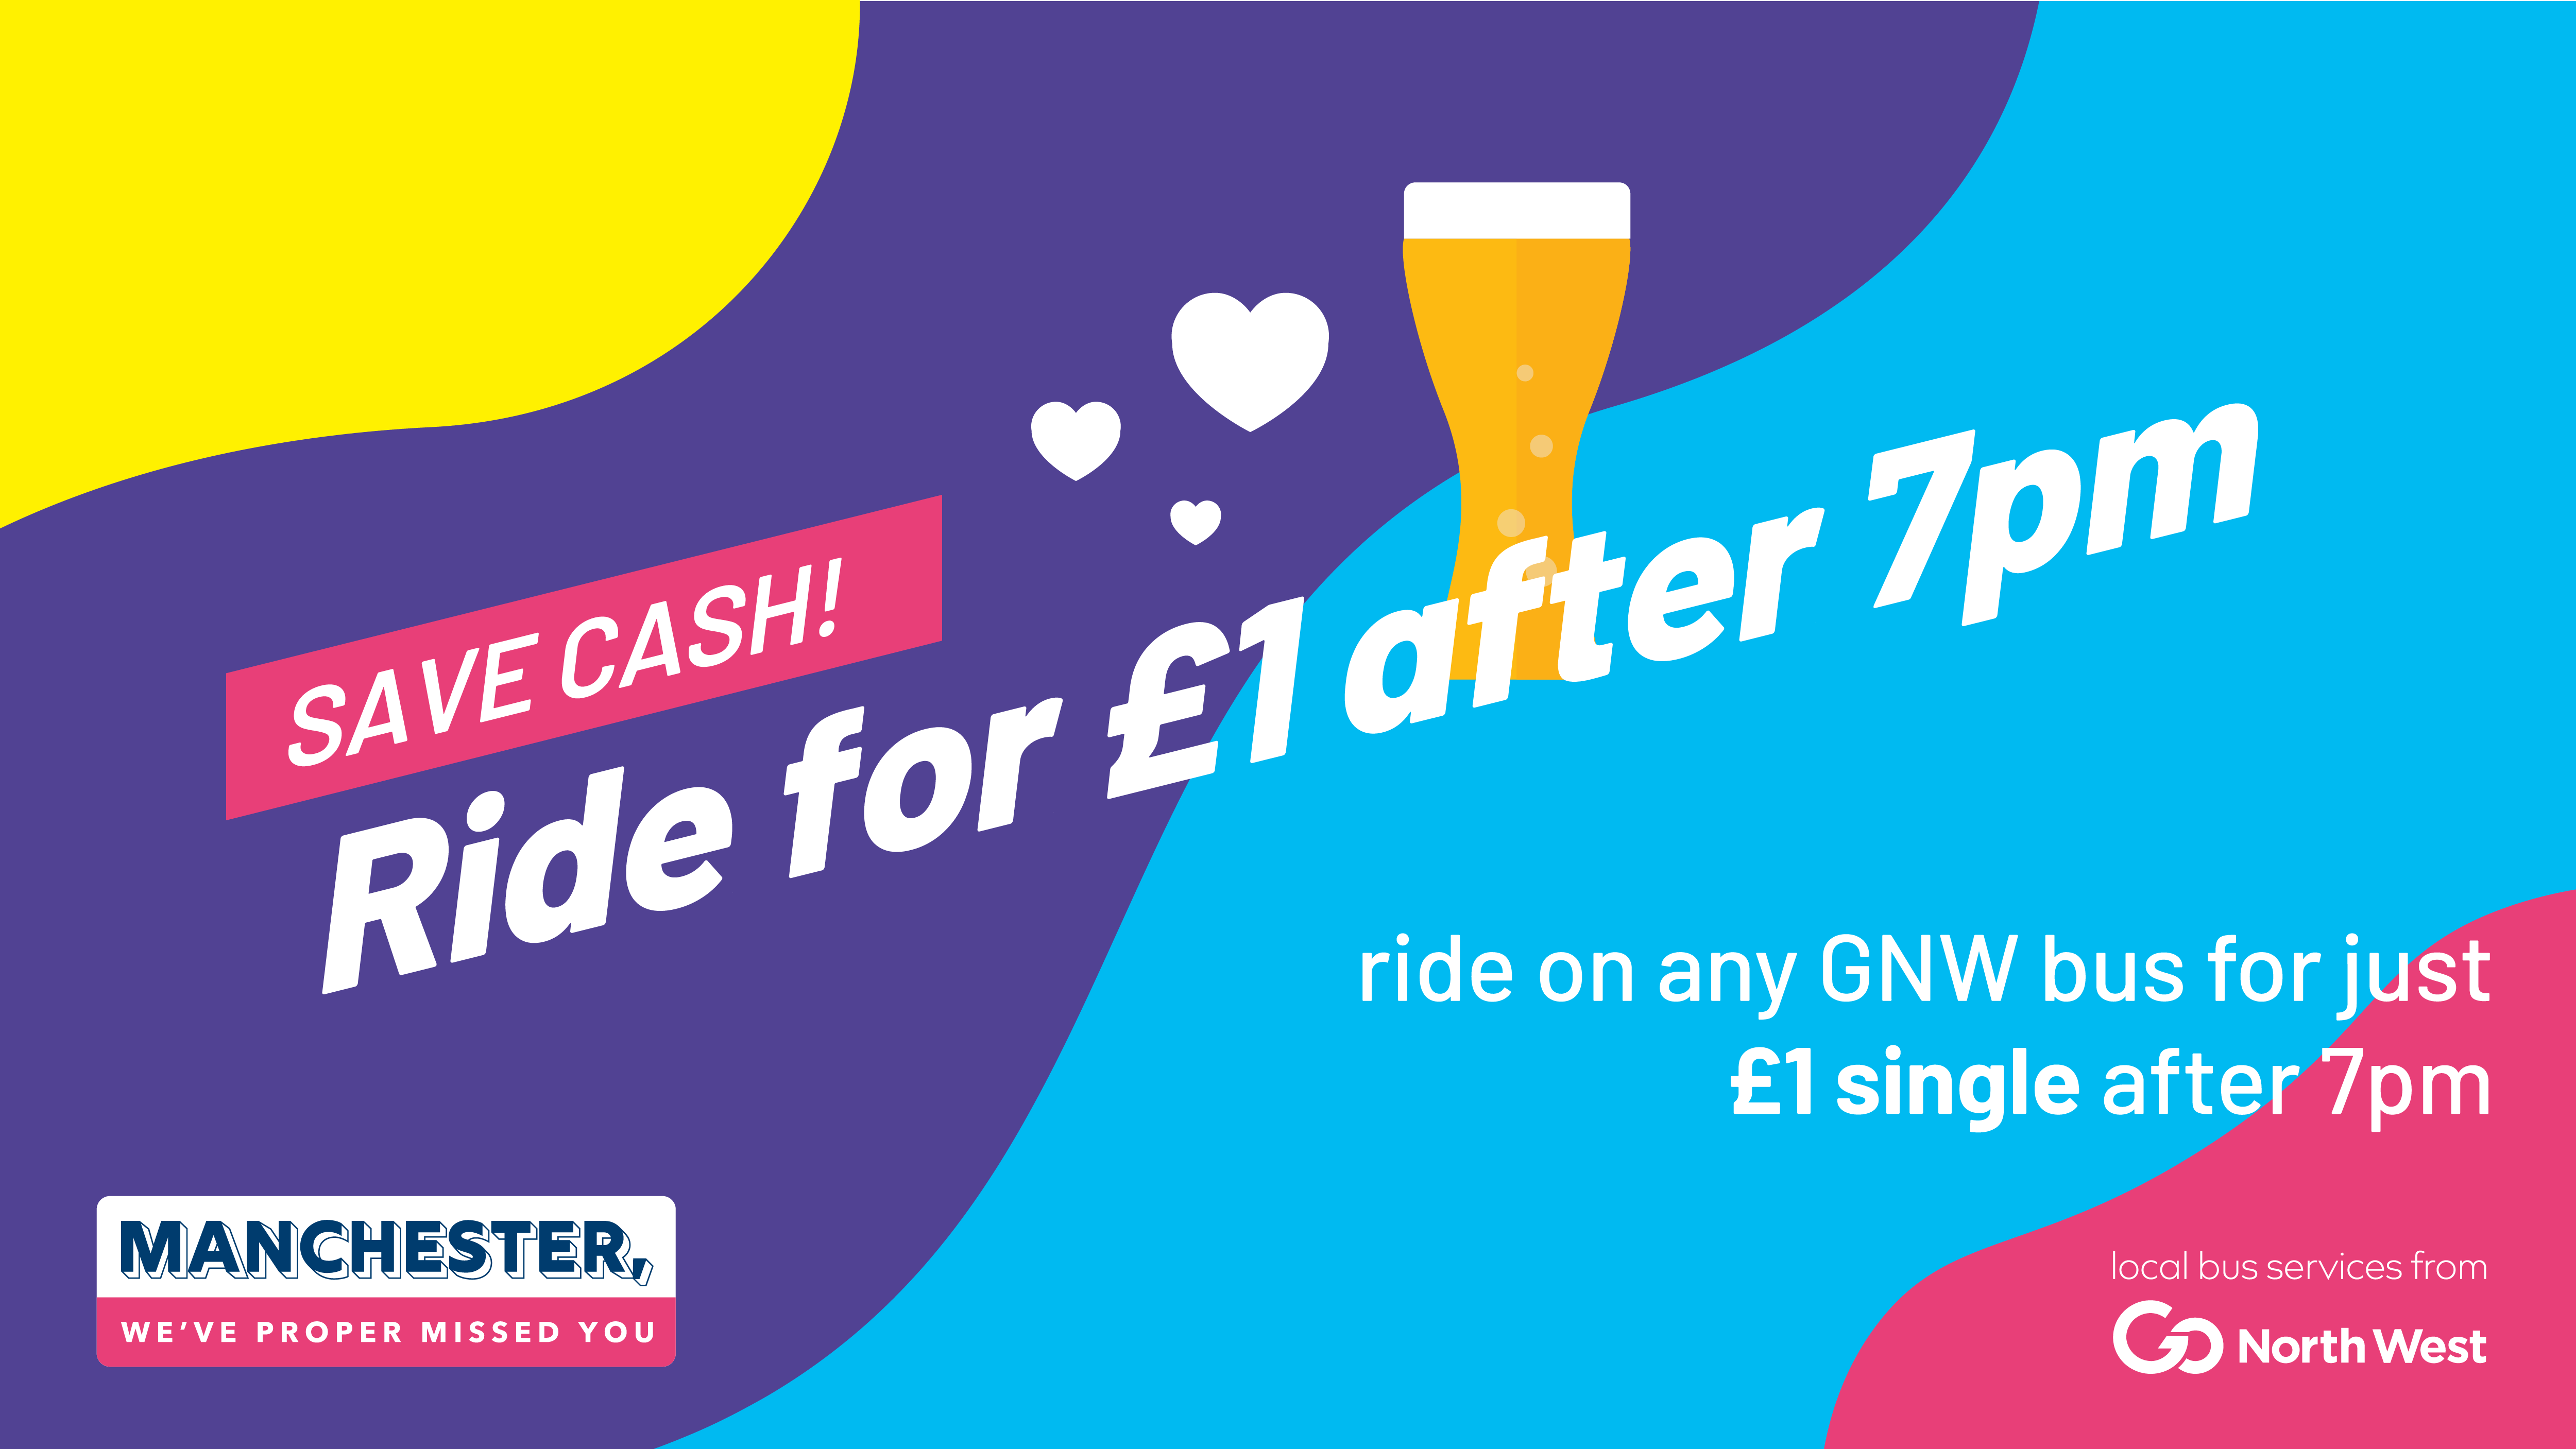 Ride for £1 after 7pm